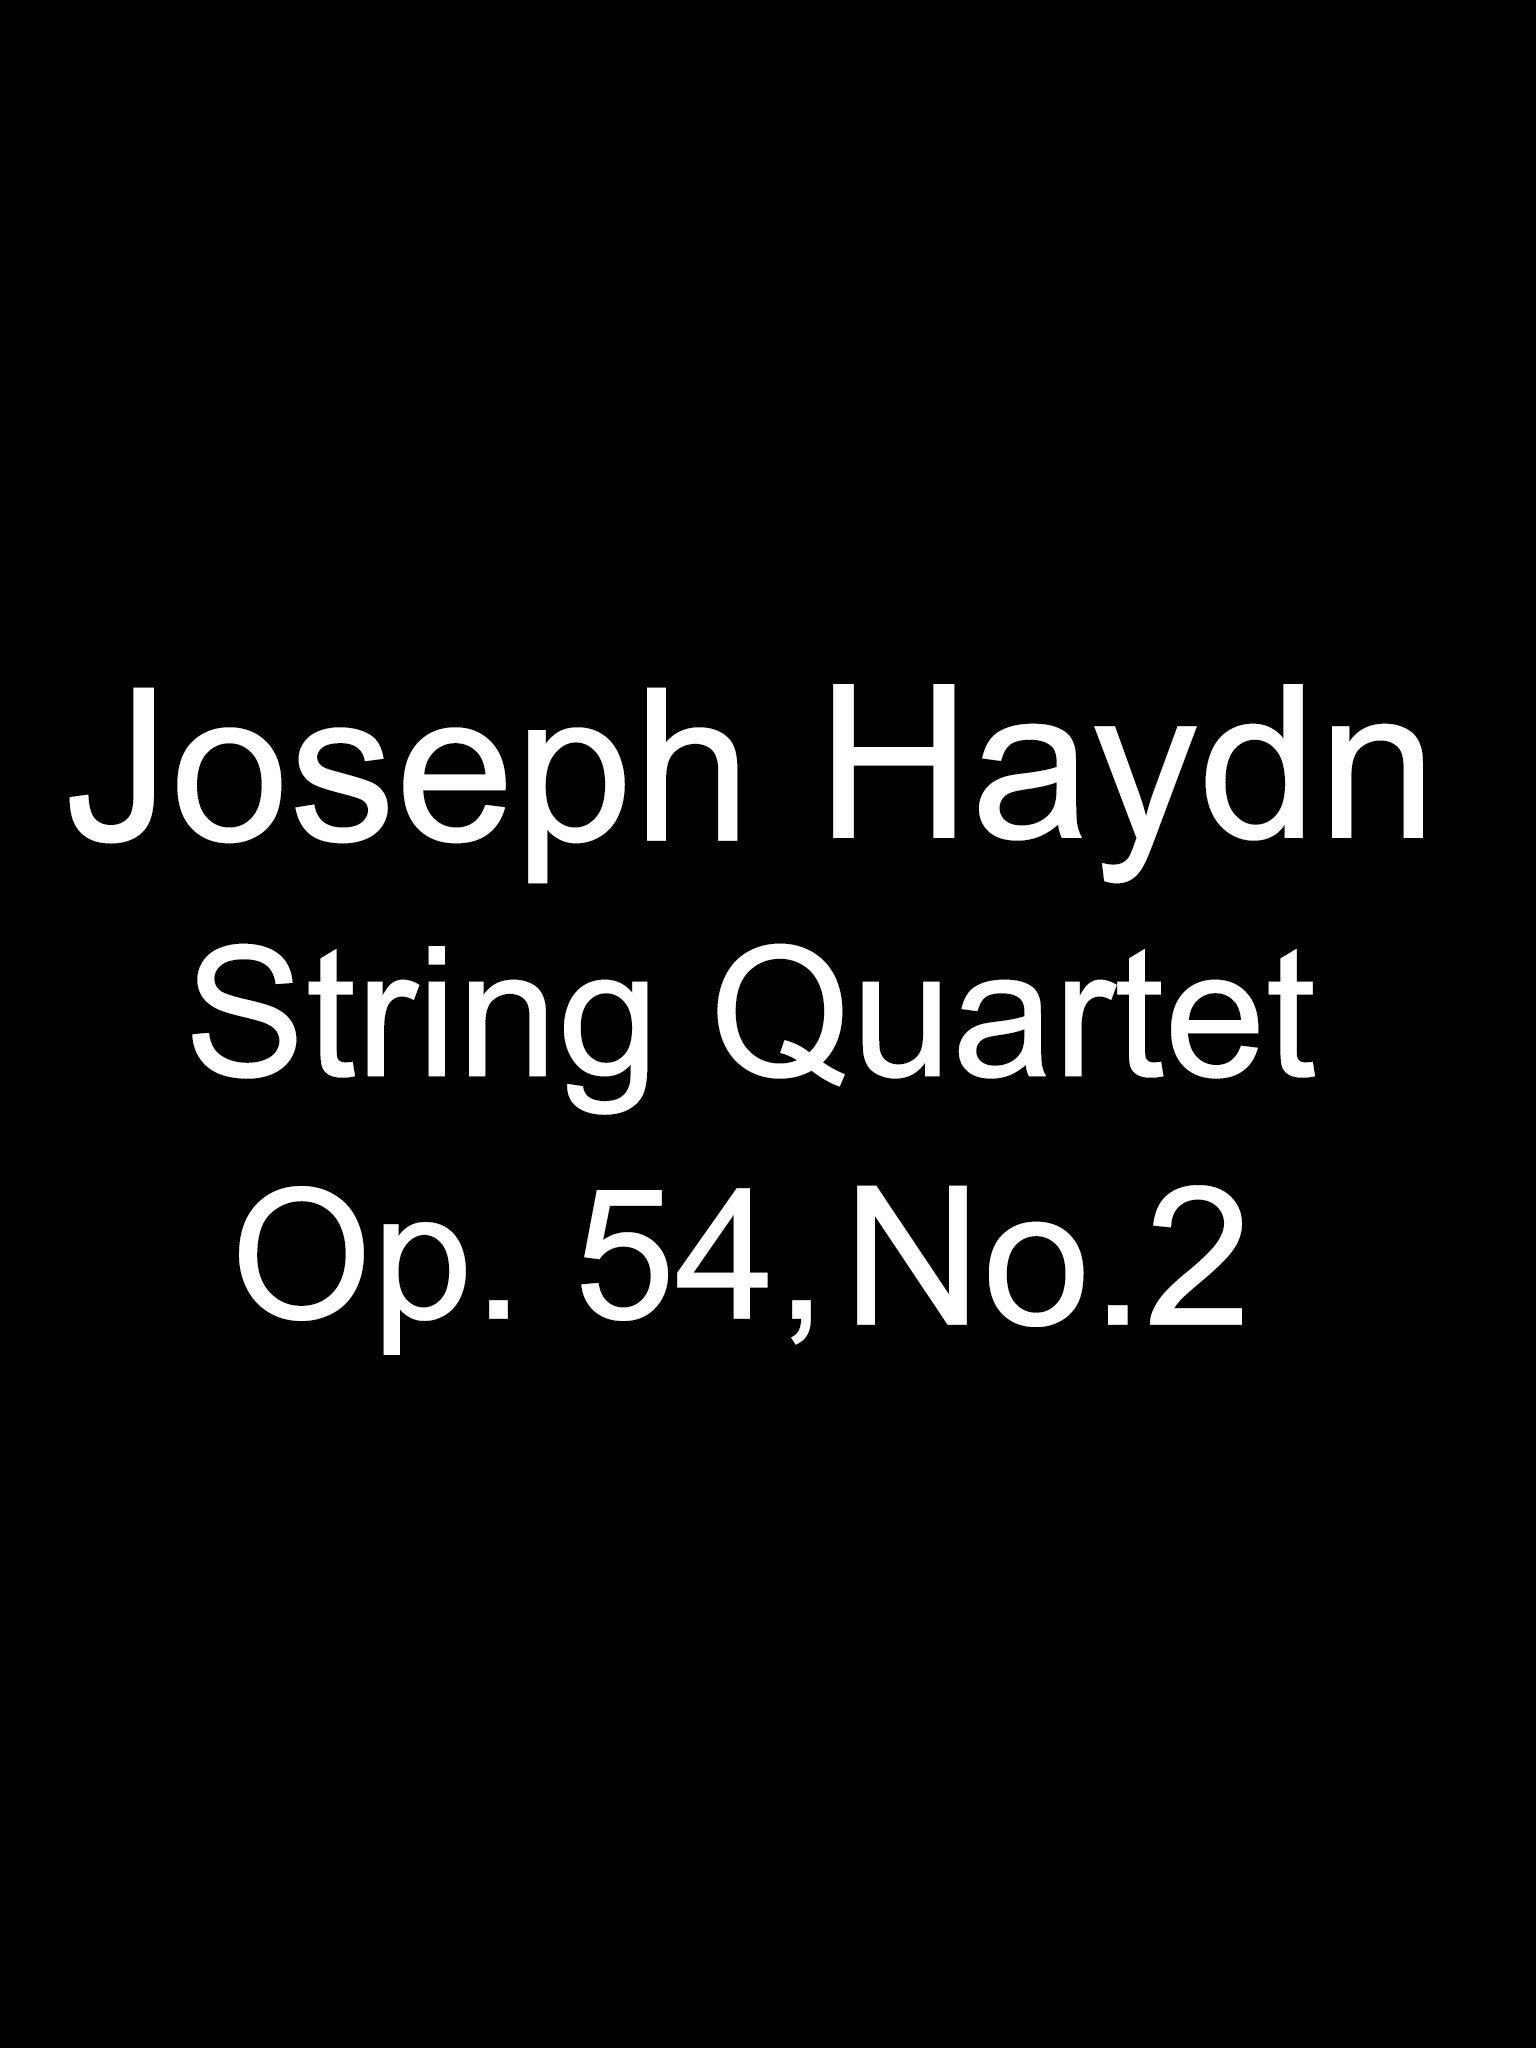 Joseph Haydn String Quartet Op. 54 No. 2